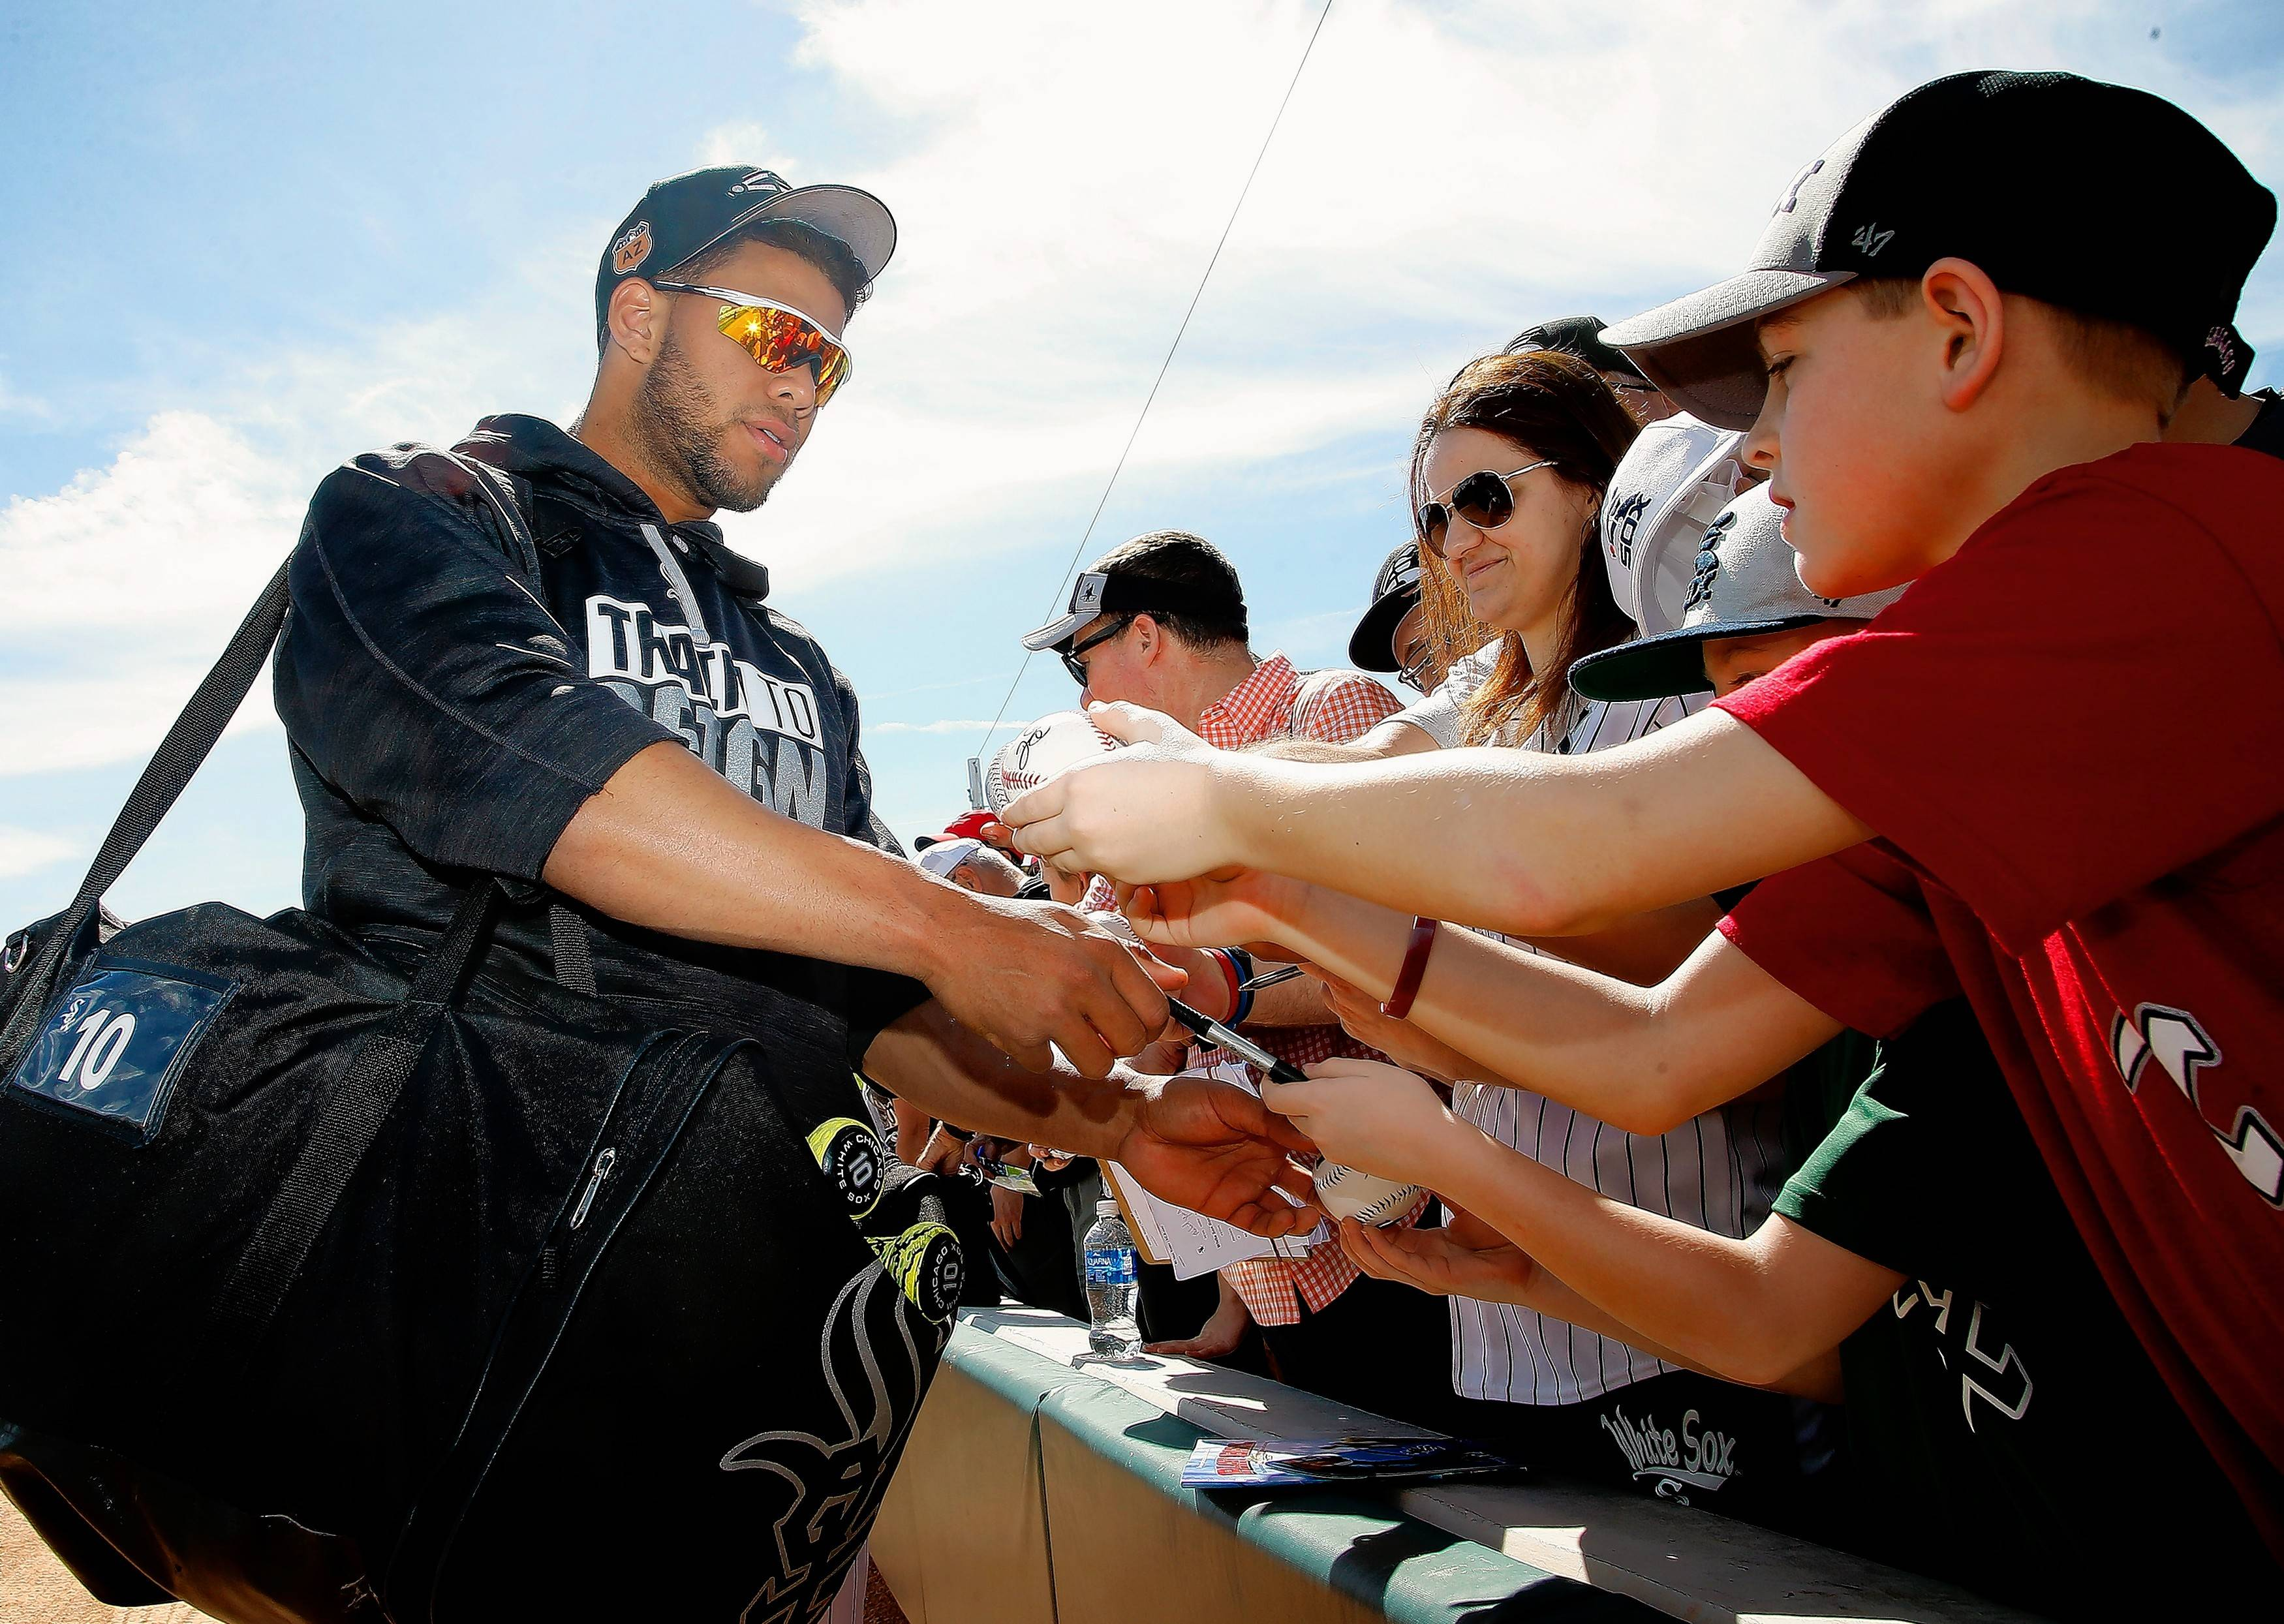 Chicago White Sox's farm system now worth watching